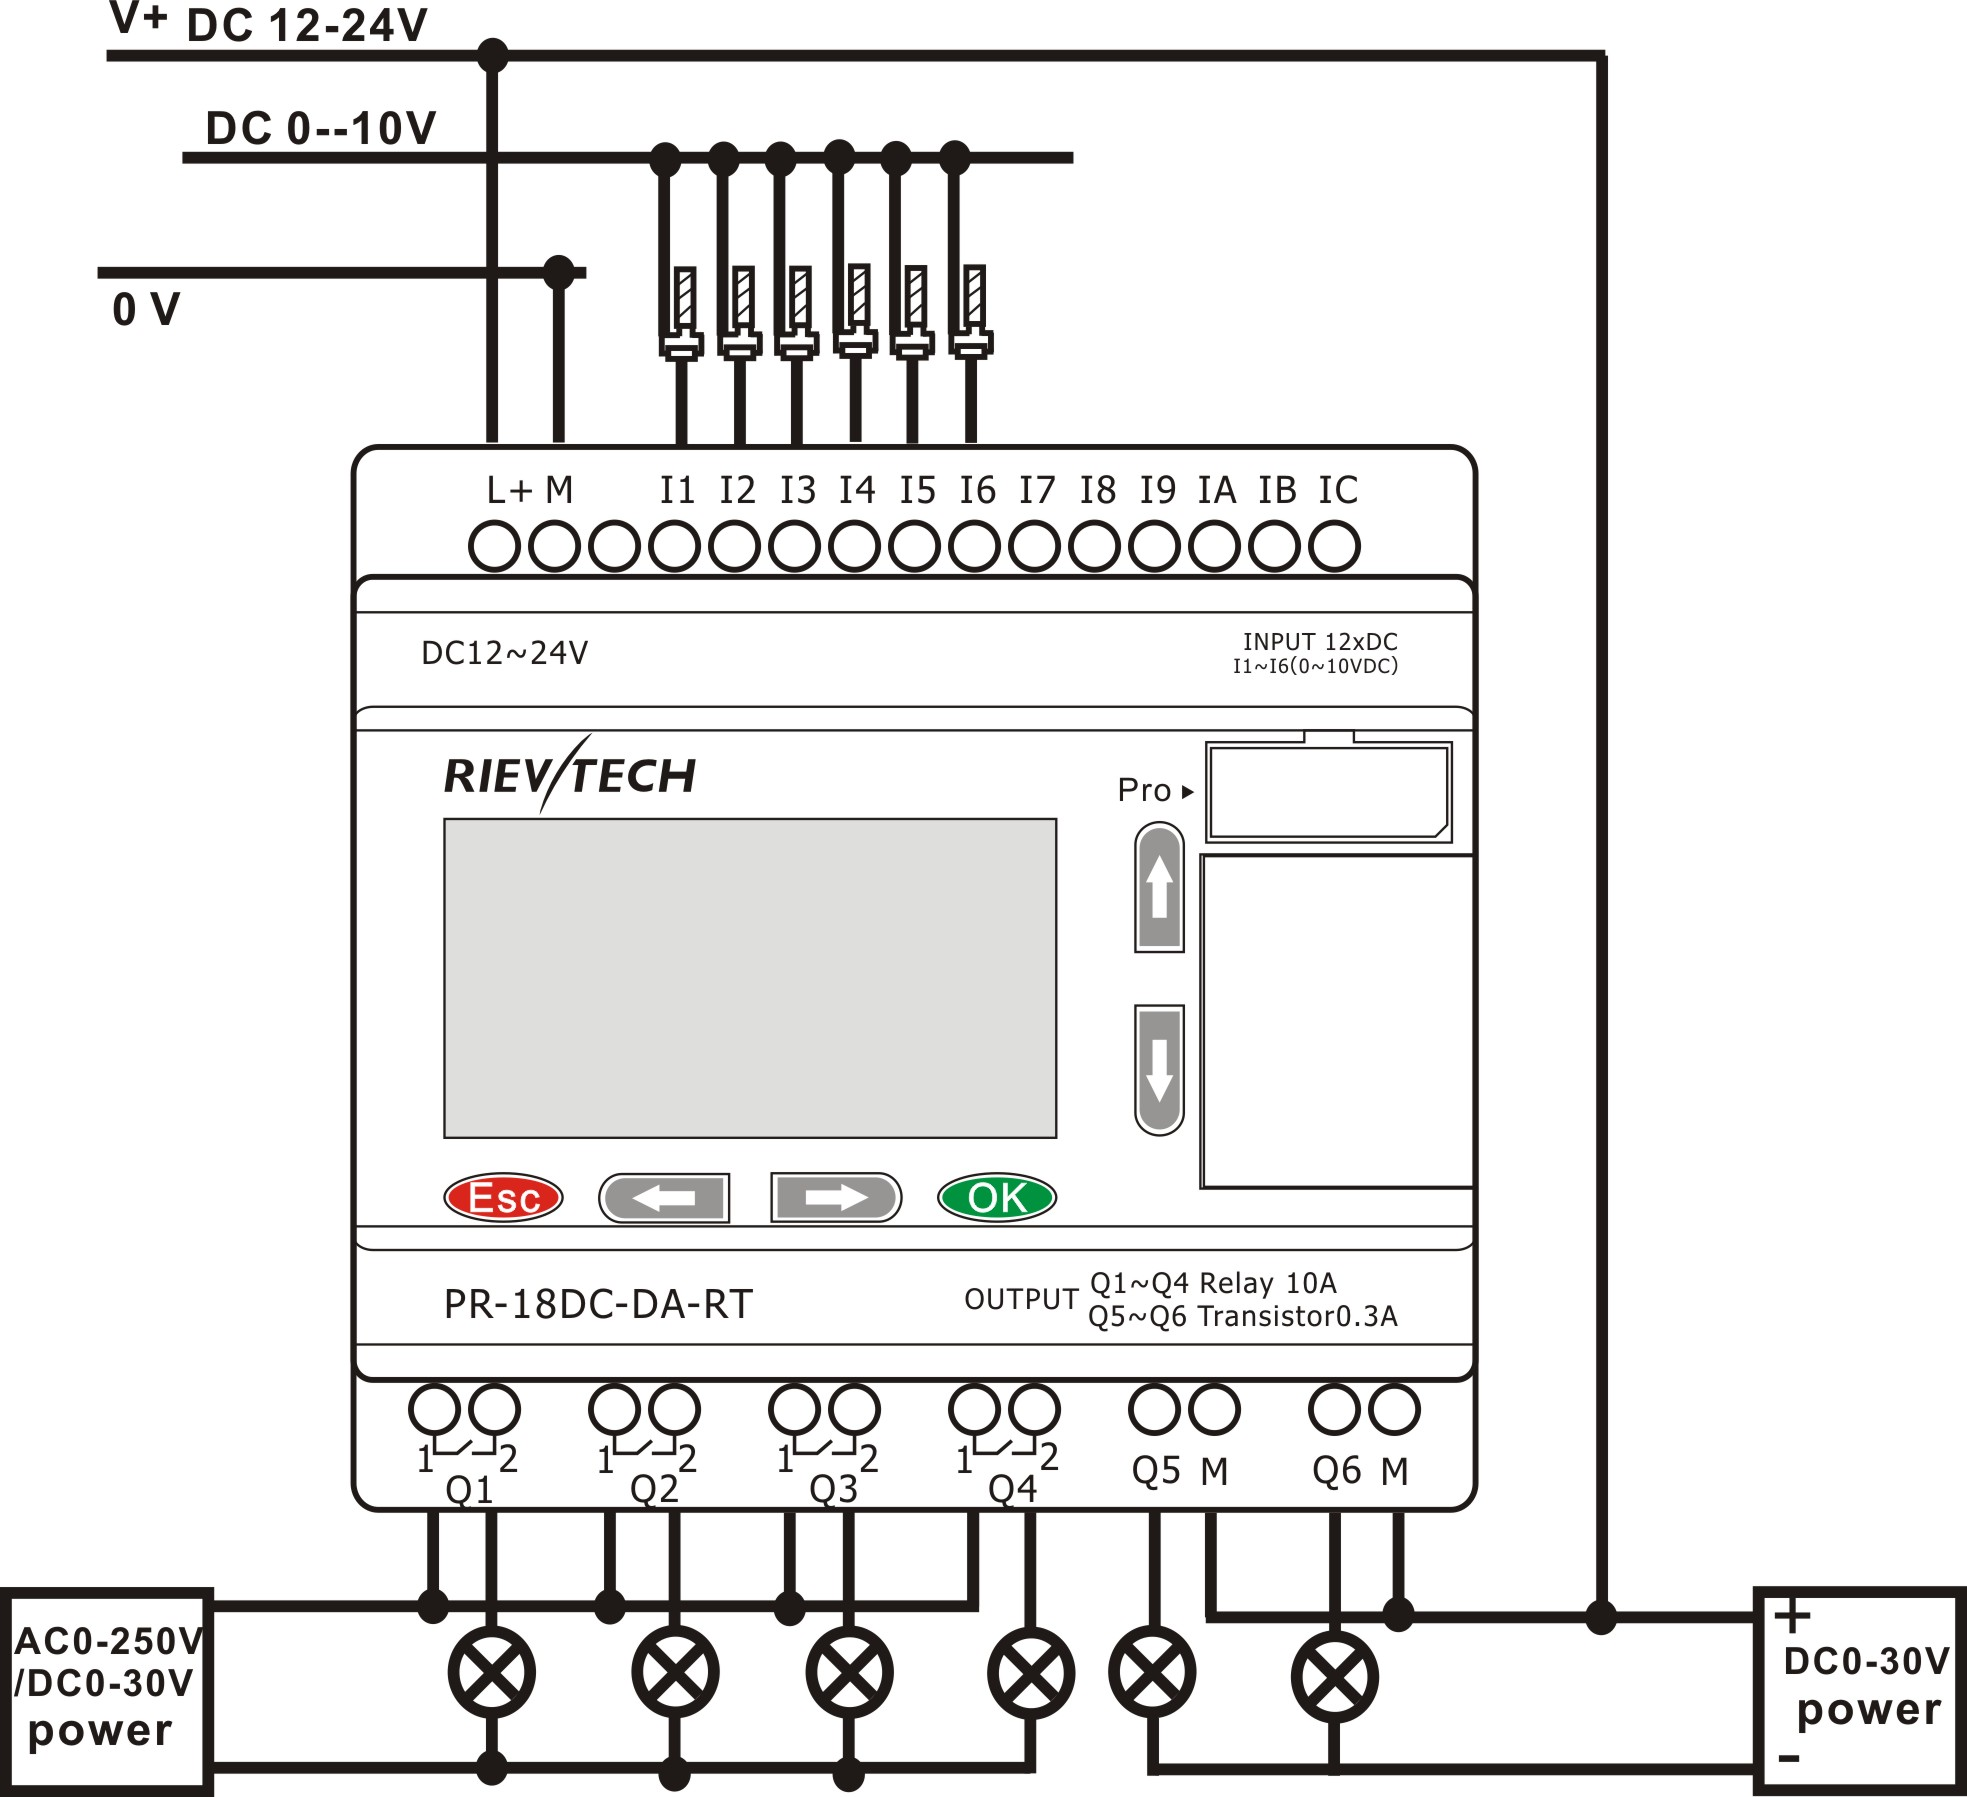 PRDC DA RT sie plc 1211c wiring diagram sie wiring diagrams instruction sm 1231 wiring diagram at fashall.co